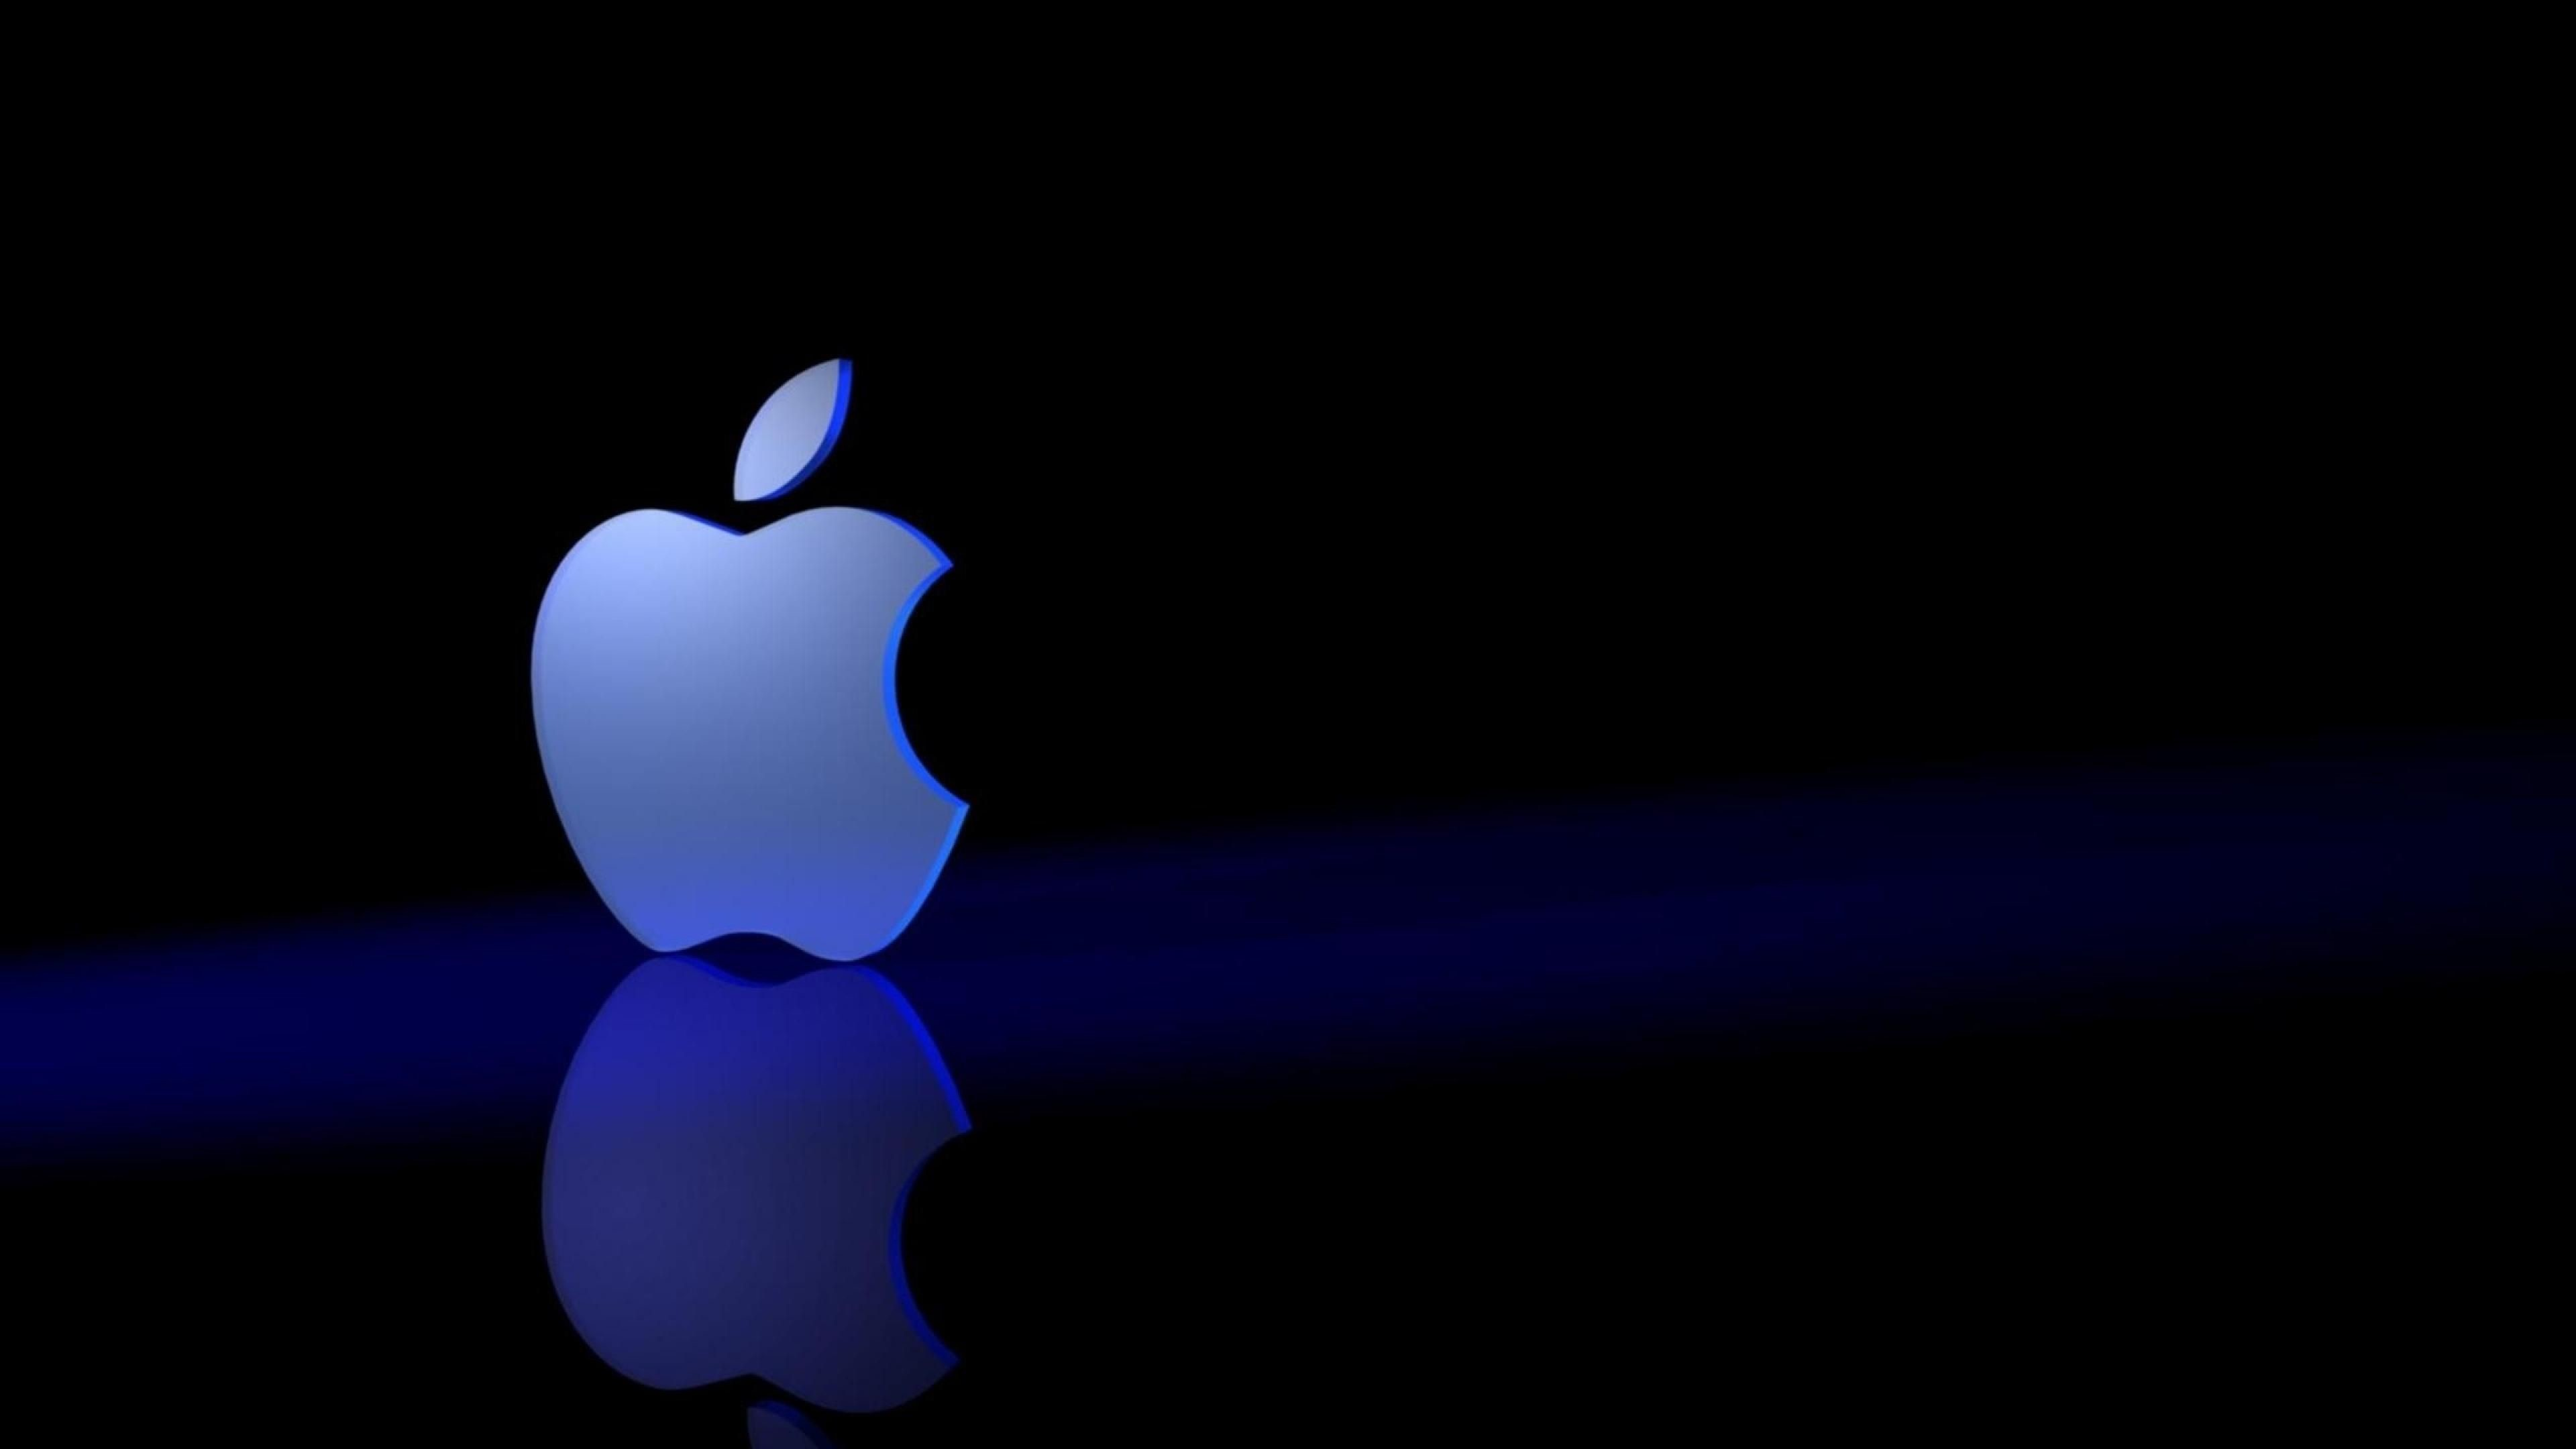 3840x2160 Apple Logo I Phone 5s Lock Screen Wallpaper HD #2527 Wallpaper .